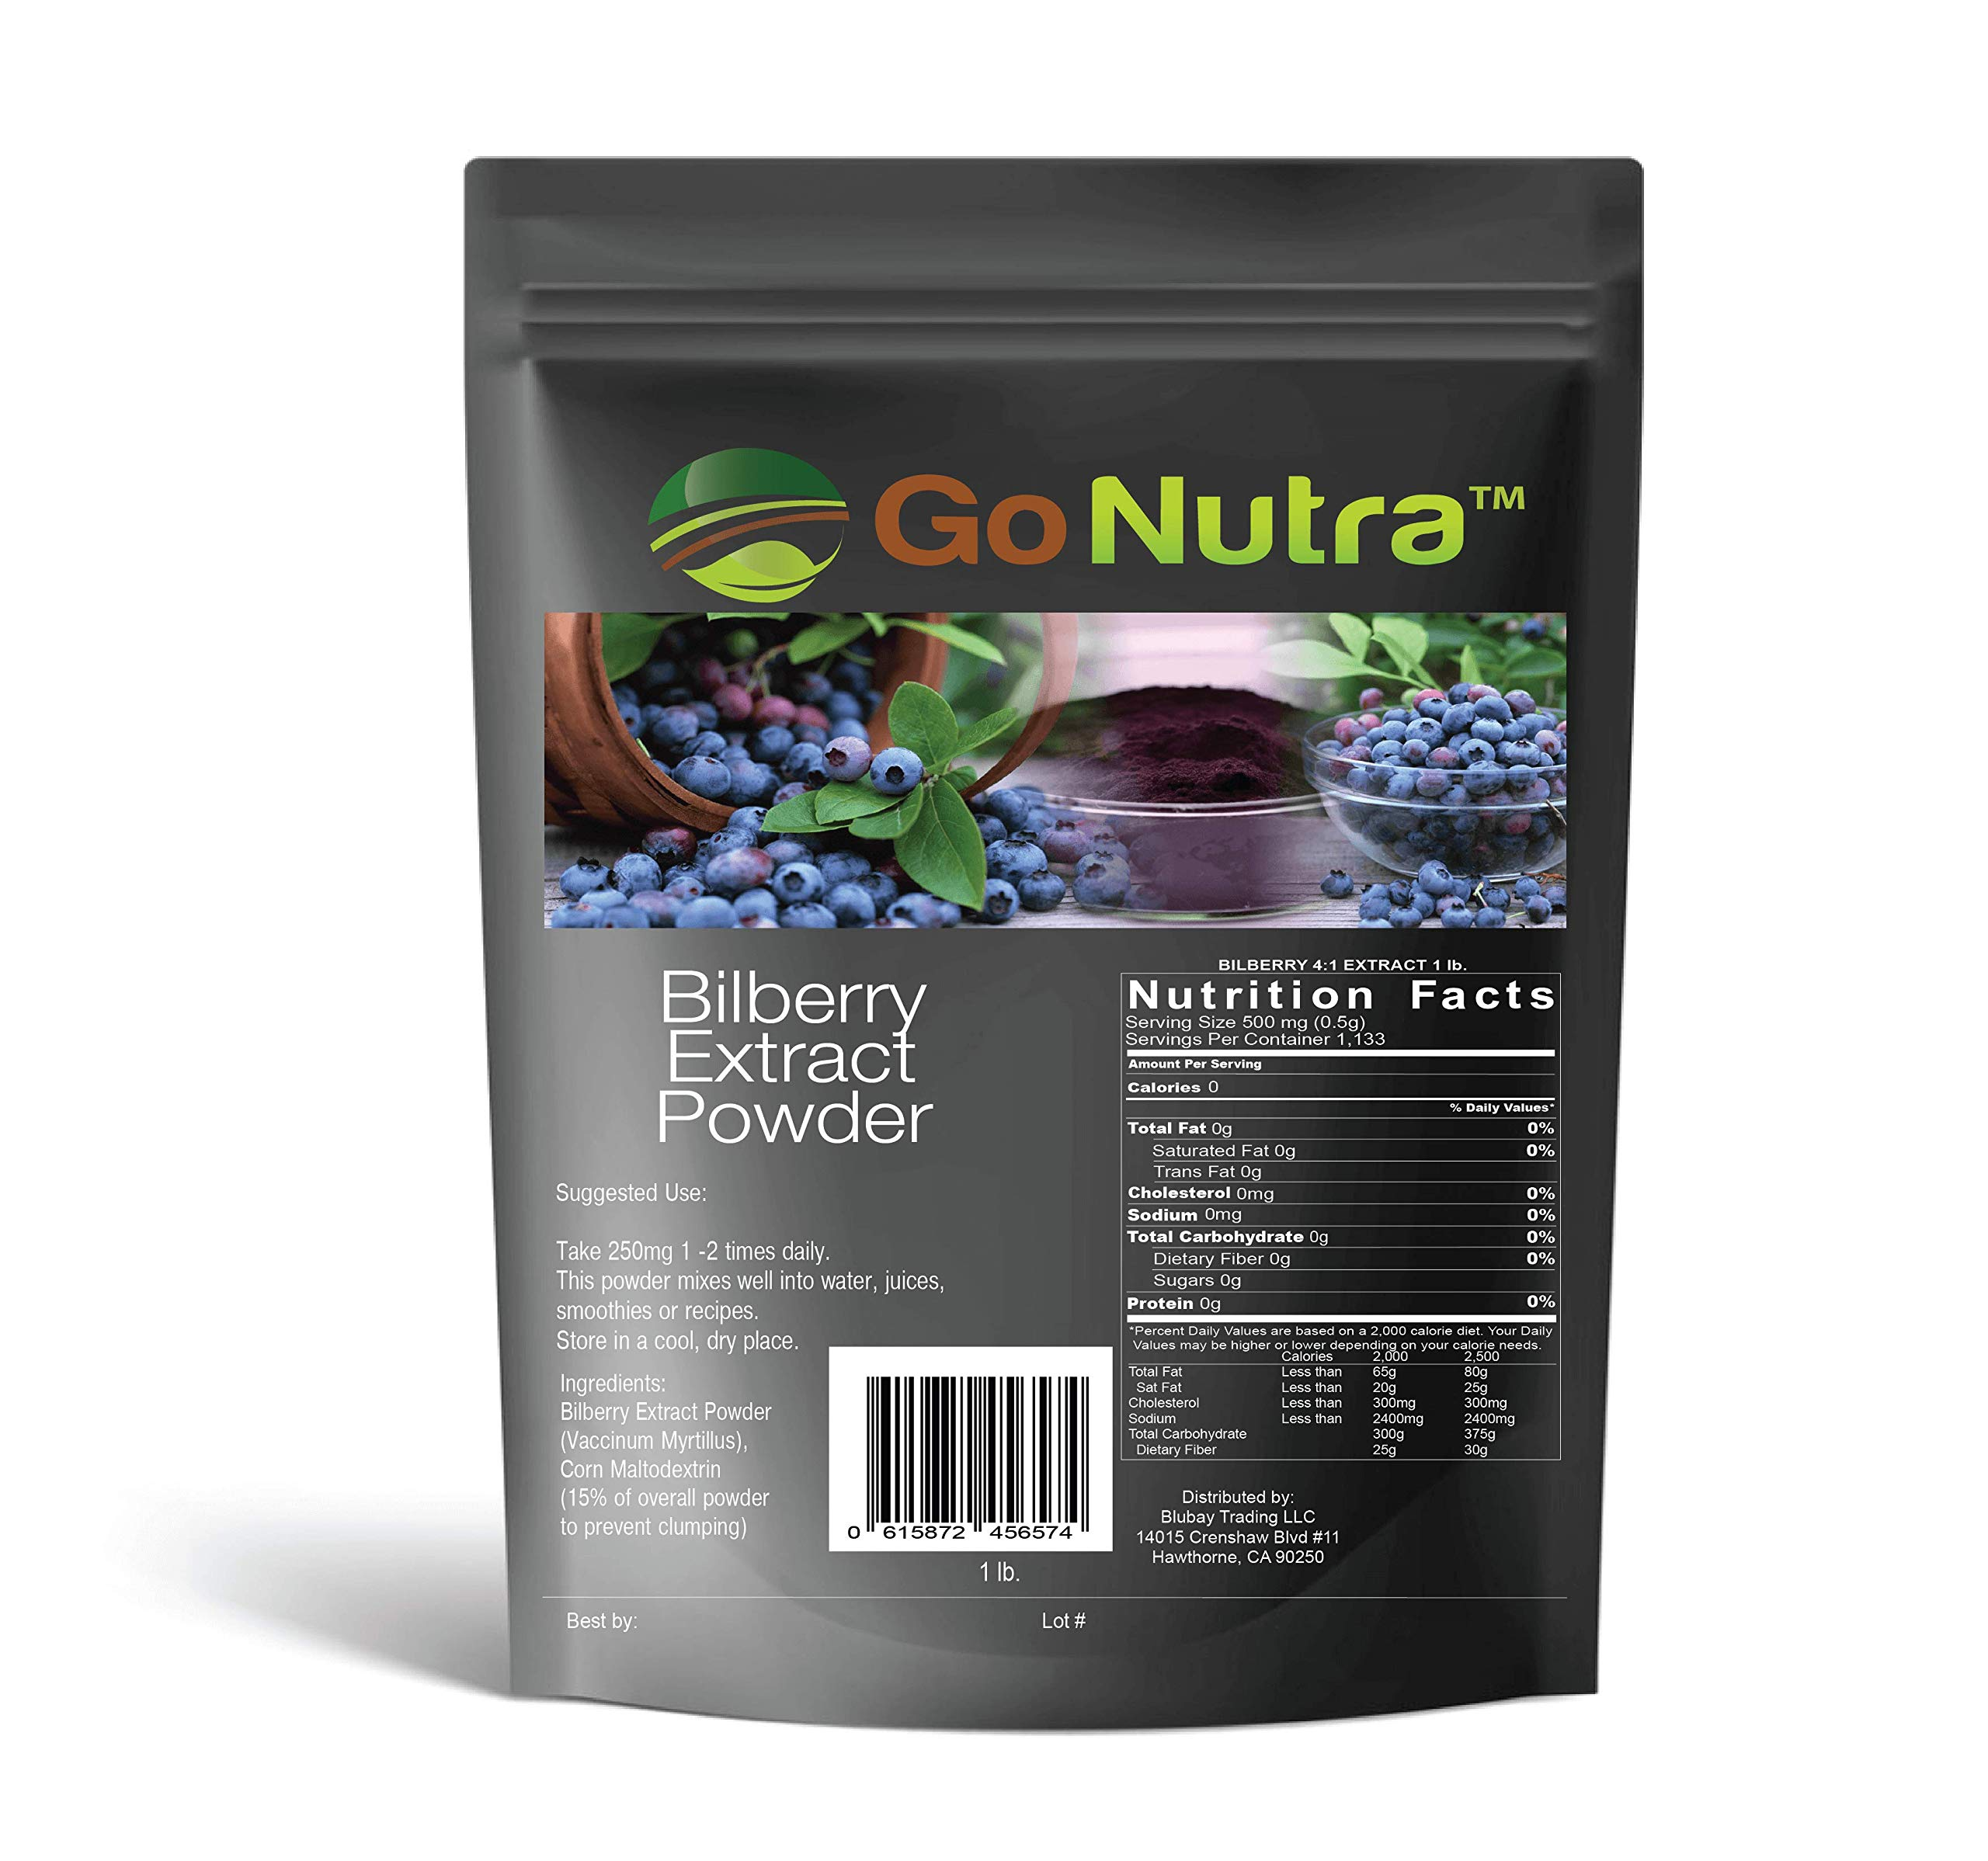 Bilberry Fruit Powder 4:1 Extract 4X Stronger Antioxident 1 lb